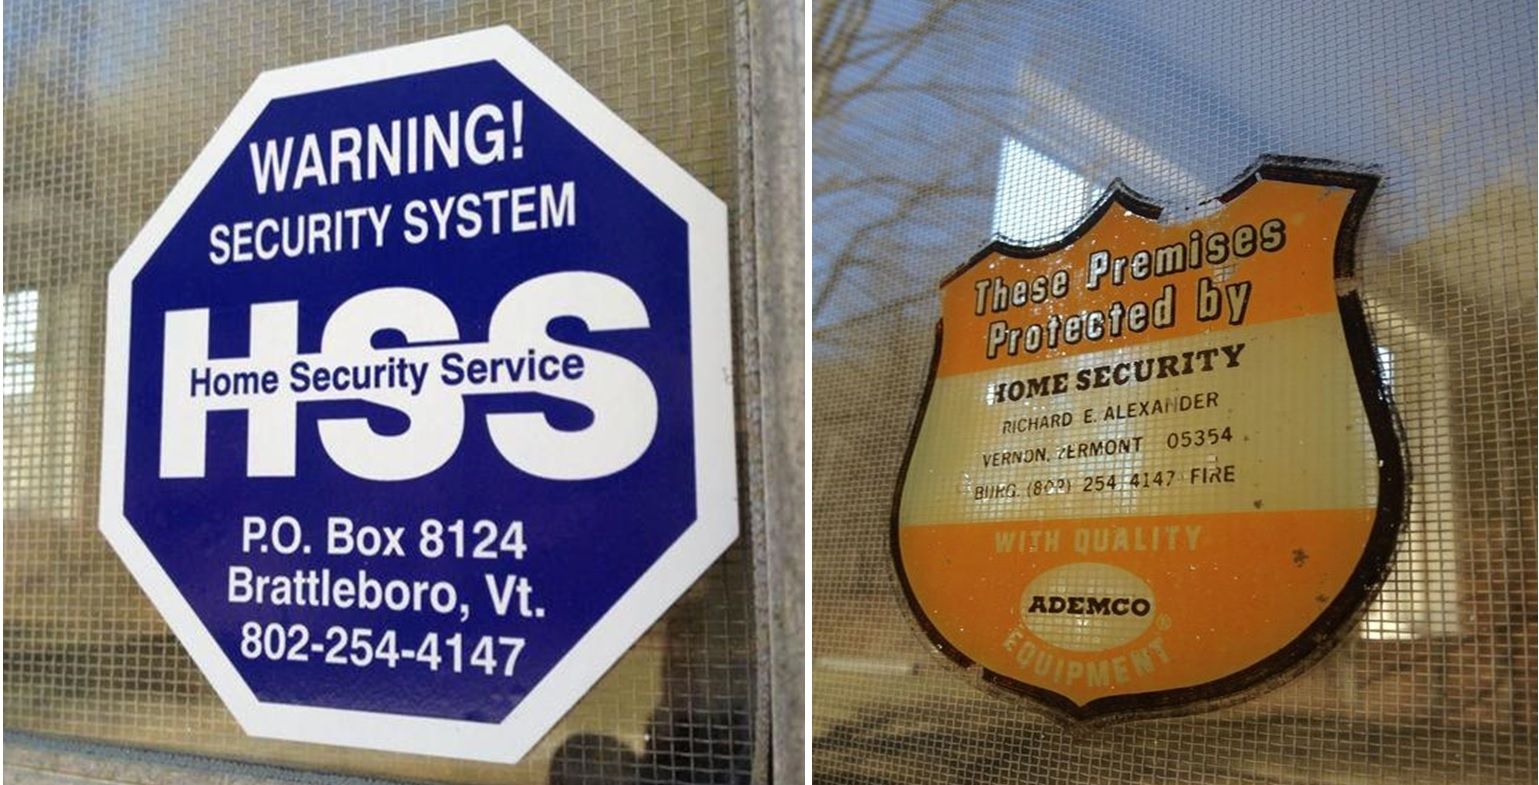 Home Security Services' window decal they use today and one of their originals from the 70's.